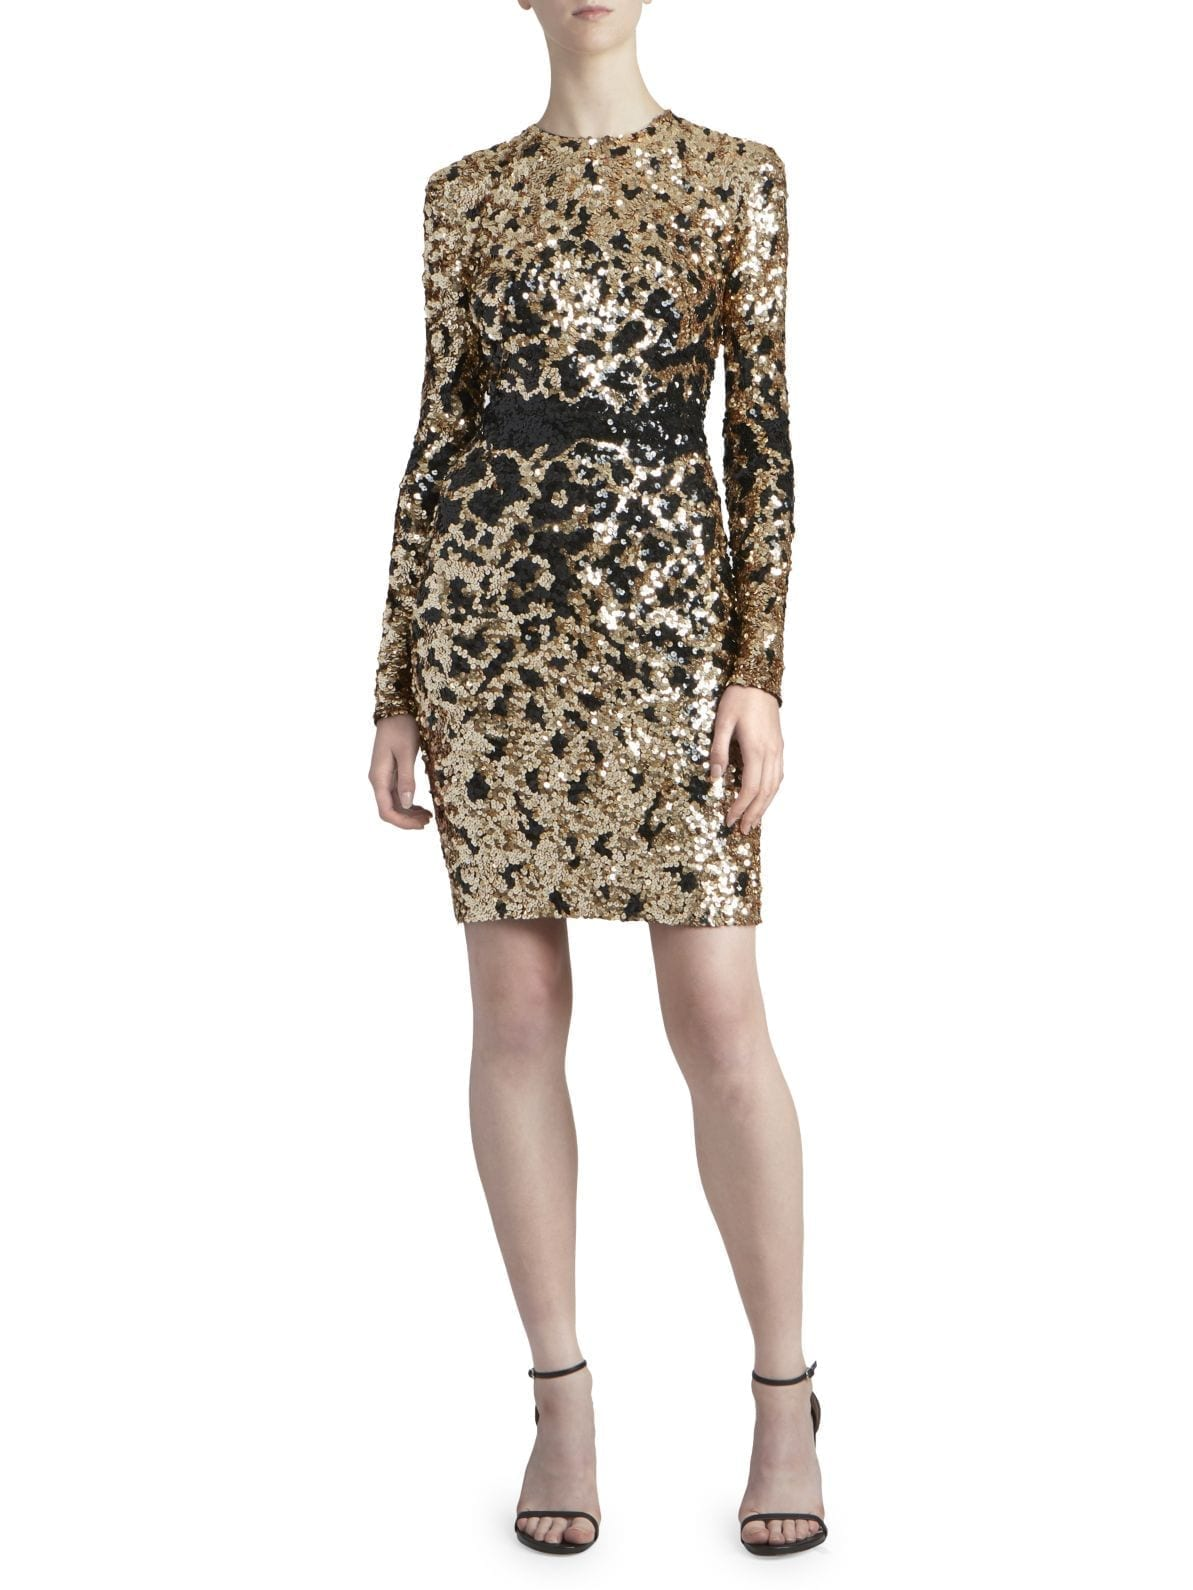 ZUHAIR MURAD Appaloosa Sequin Cocktail Dress